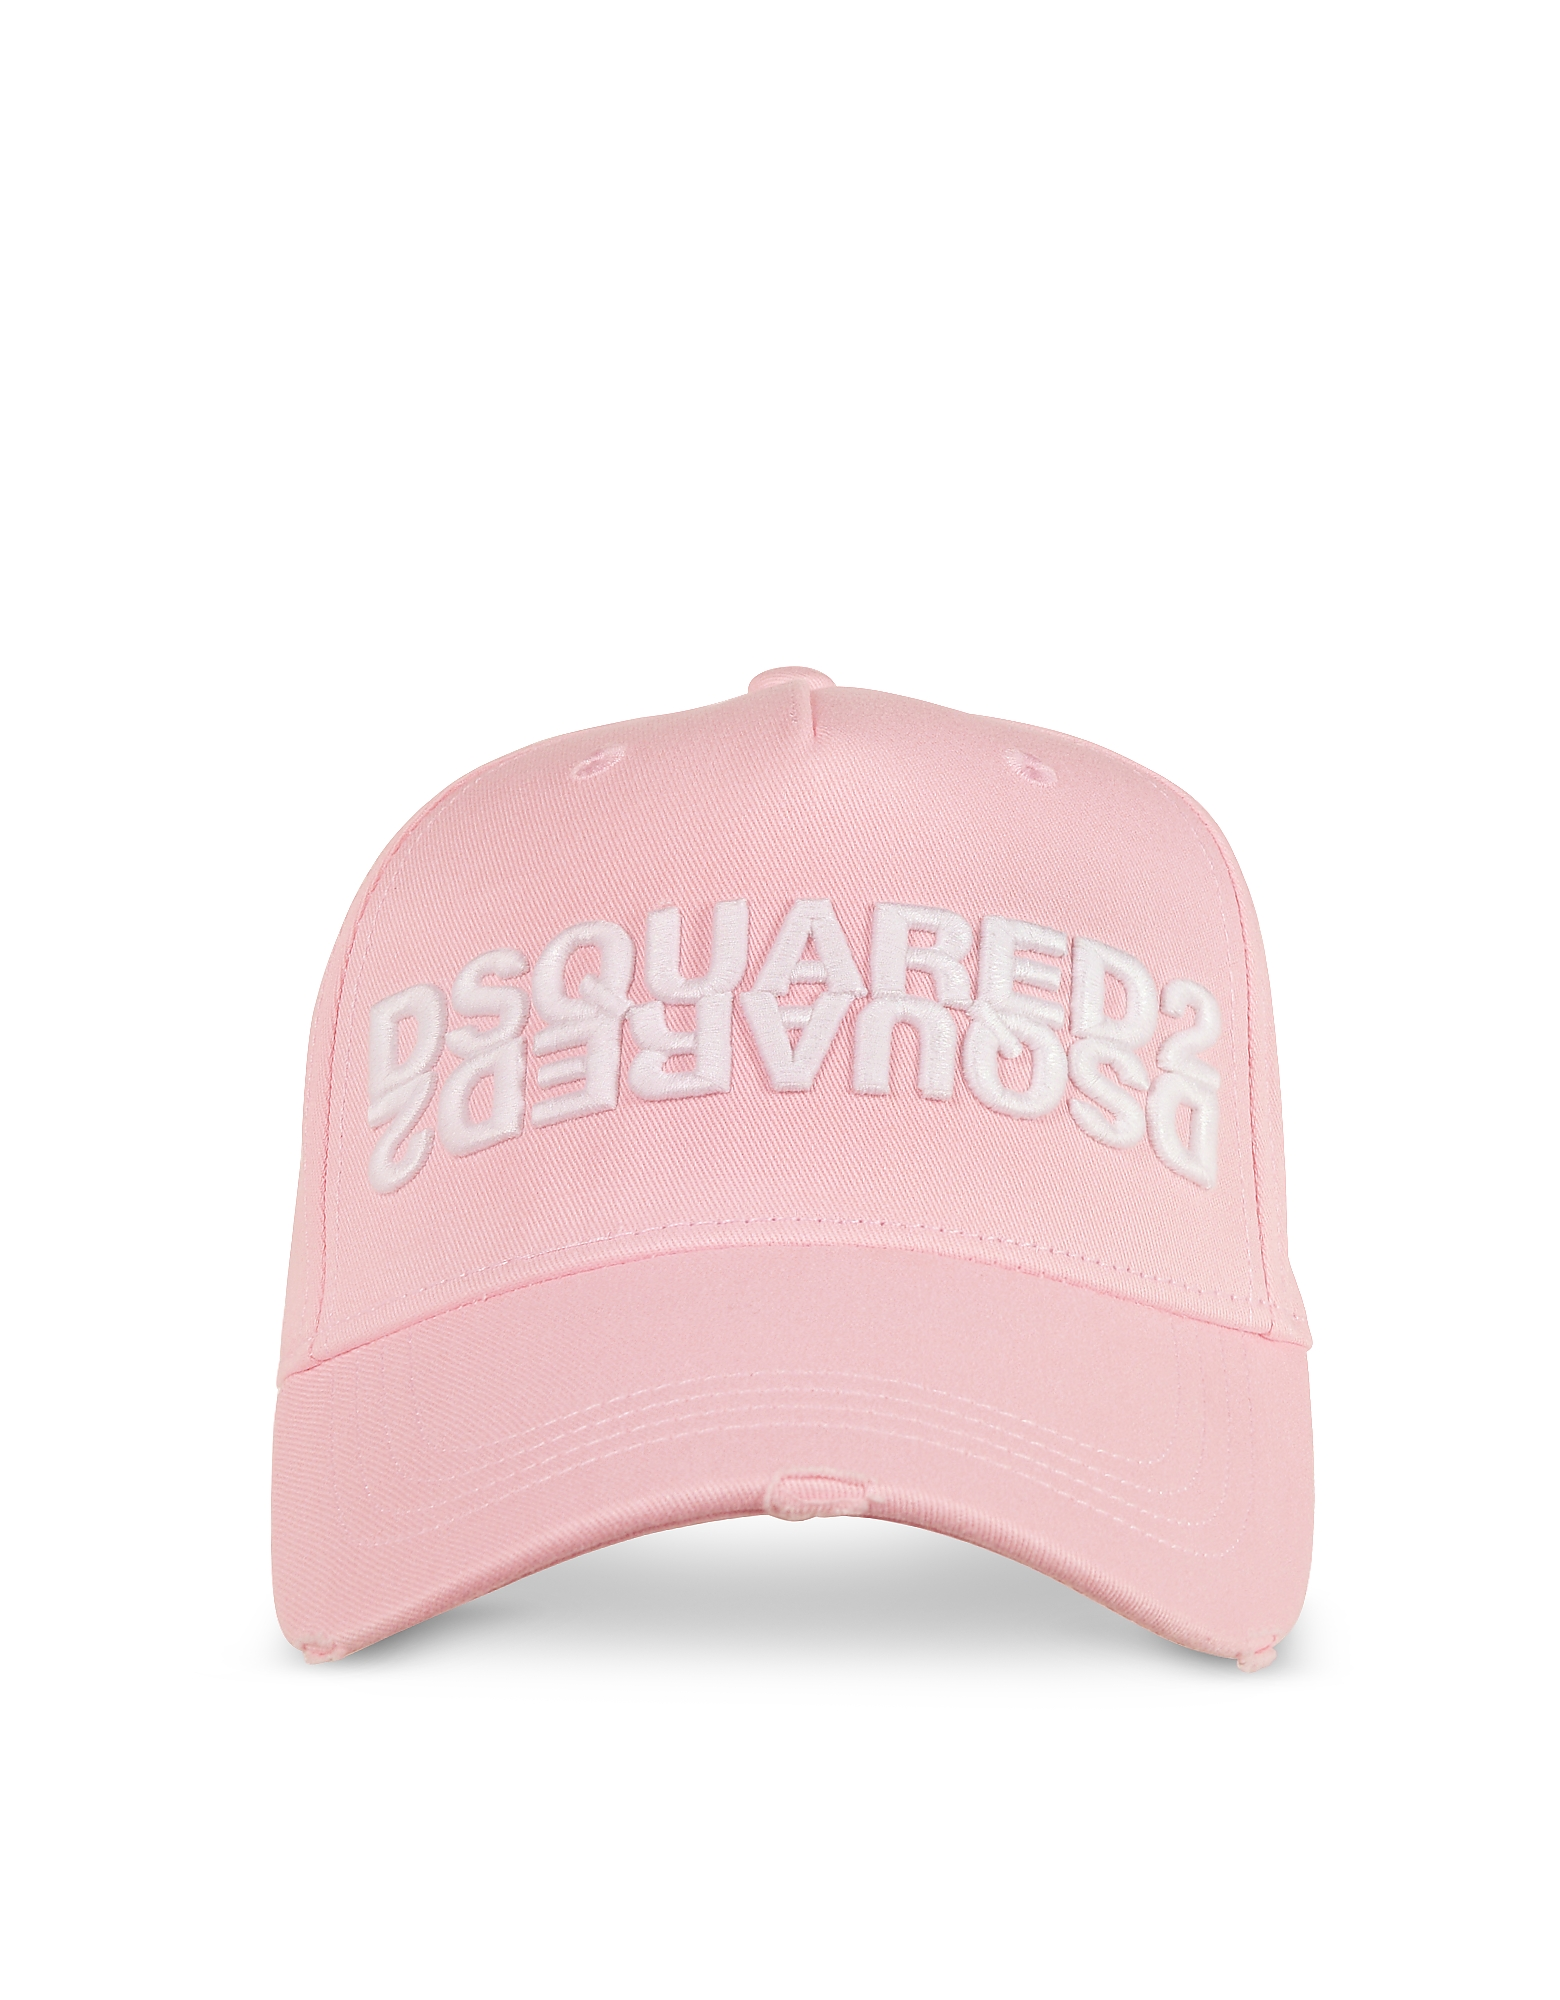 DSquared2 Designer Women's Hats, Pink Gabardine Cotton Mirror Logo Baseball Cap